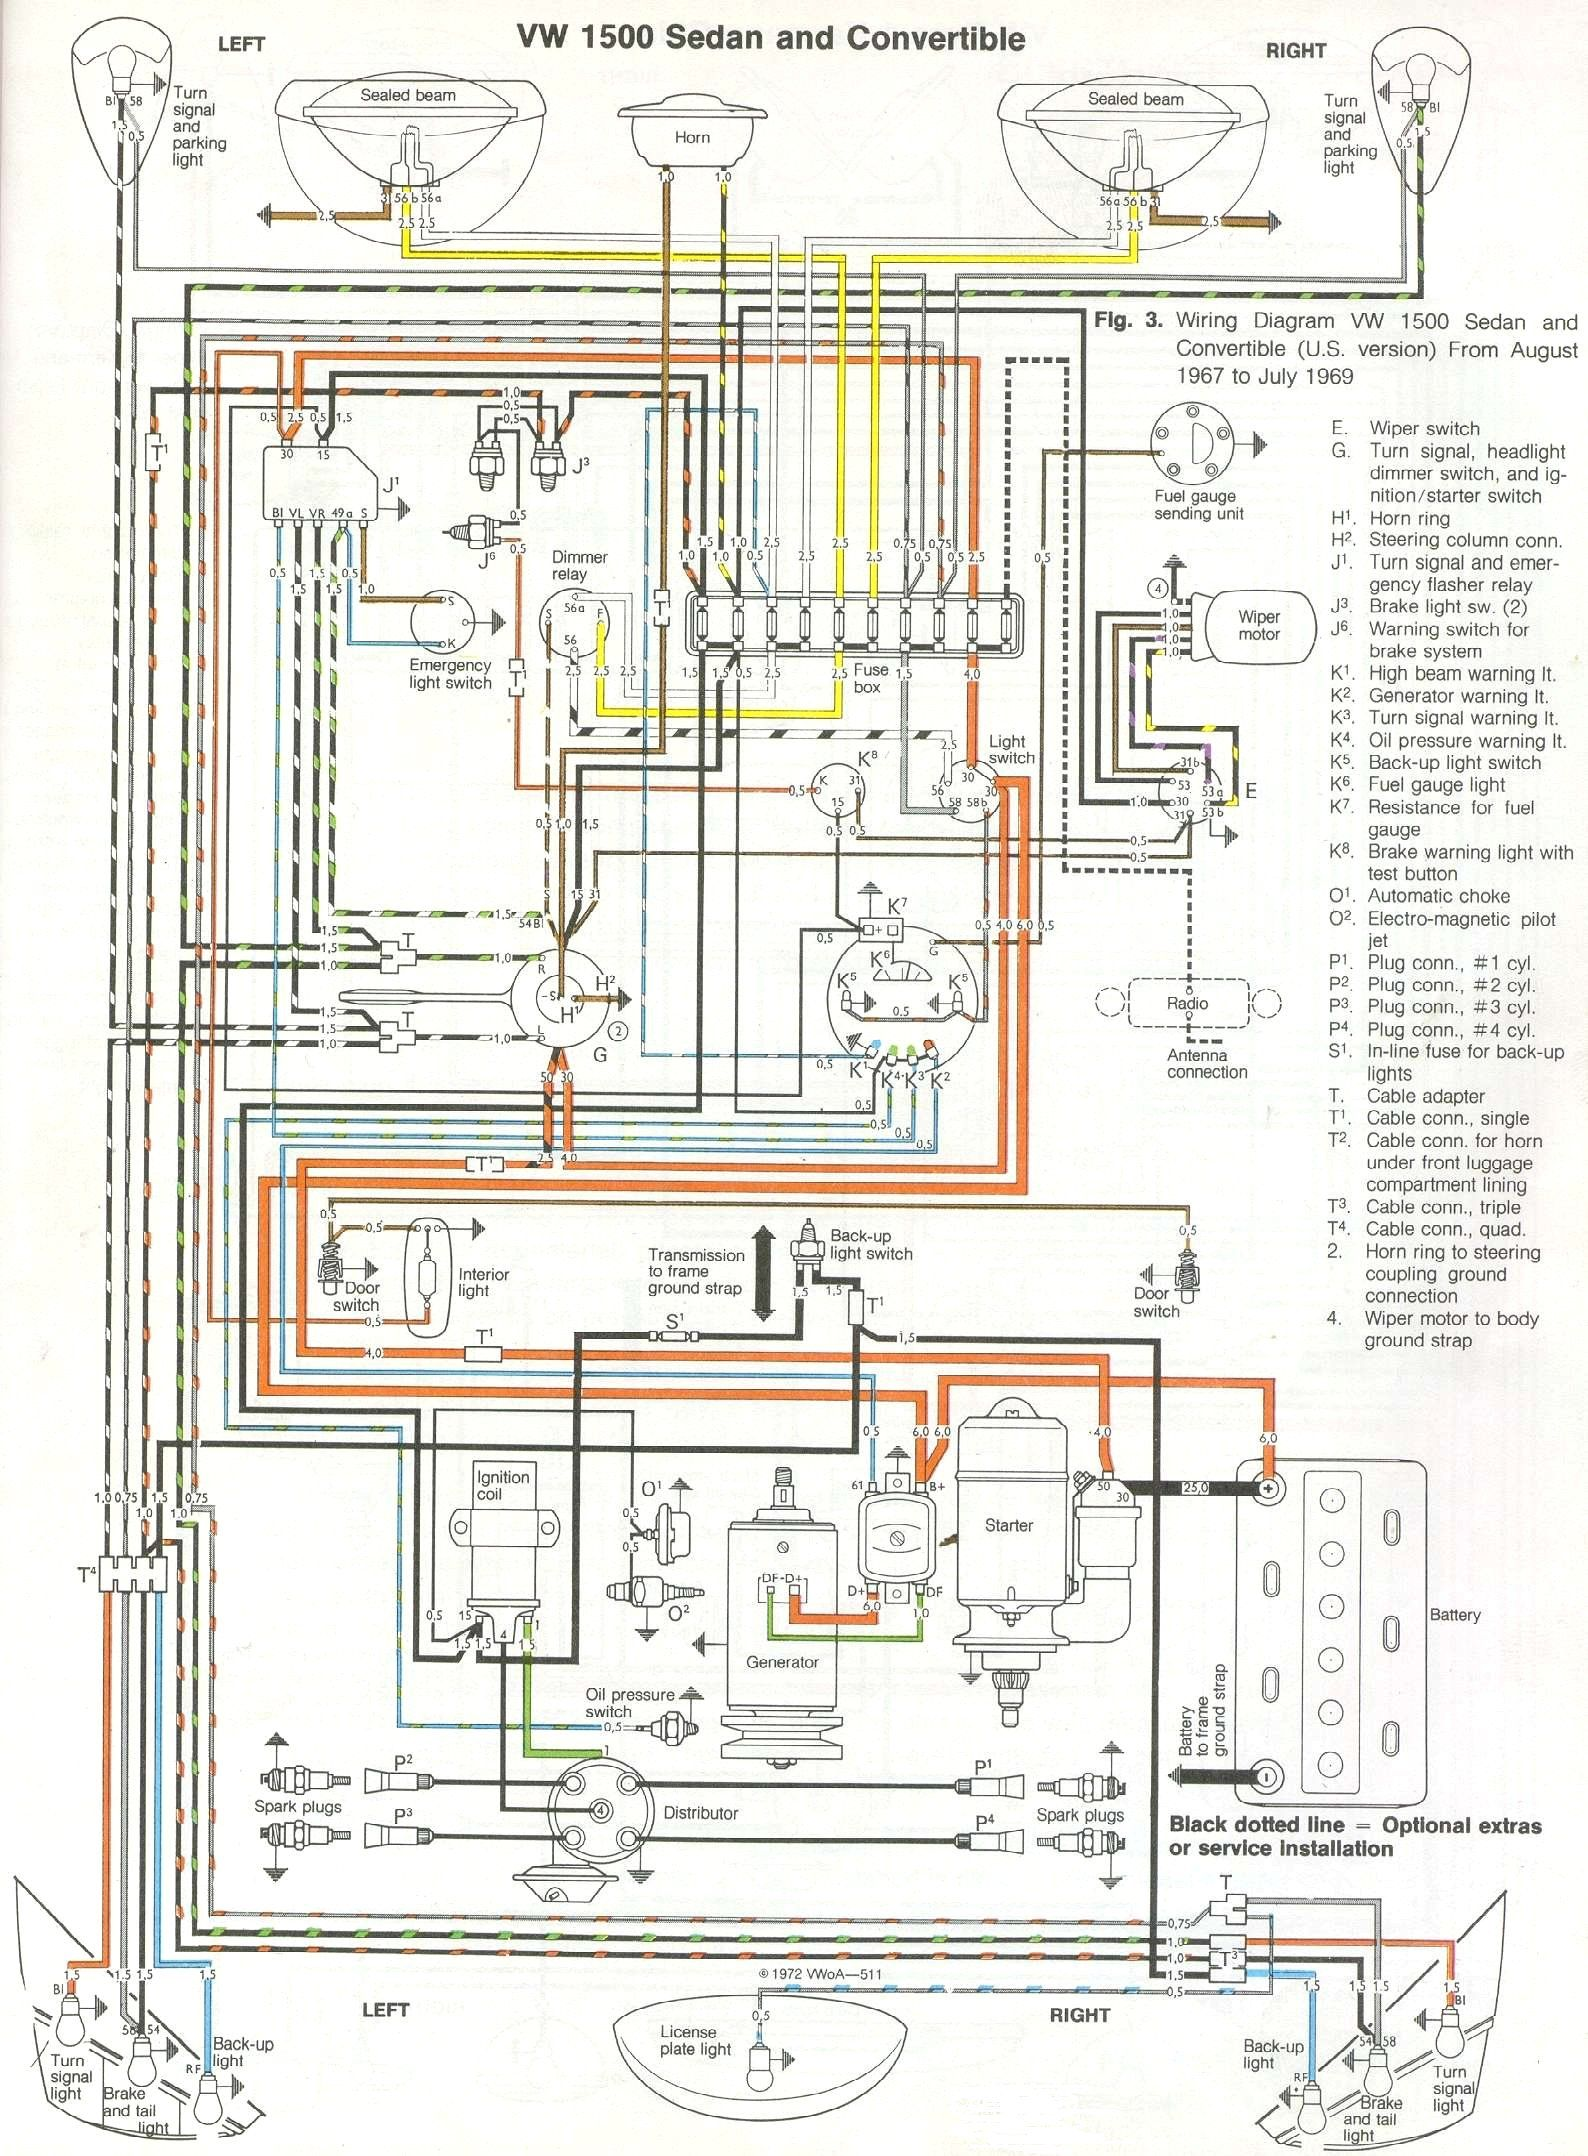 1970 vw wiring harness wiring diagram page 1970 vw wiring harness wiring diagram note 1970 vw [ 1588 x 2156 Pixel ]